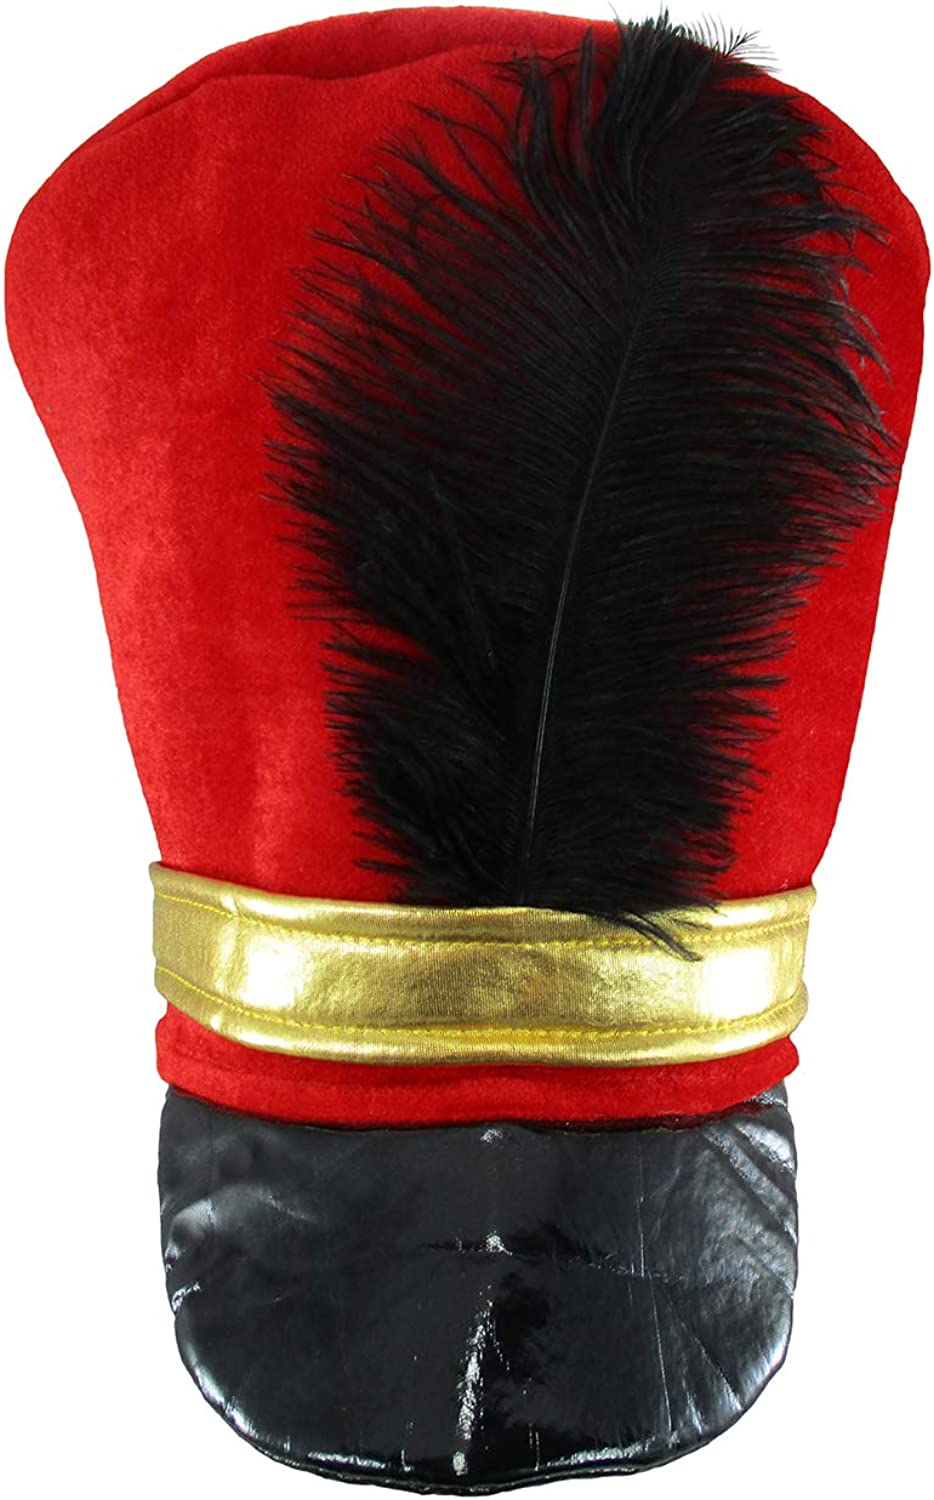 Band Major or Toy Soldier Hat Costume One Size Red Black